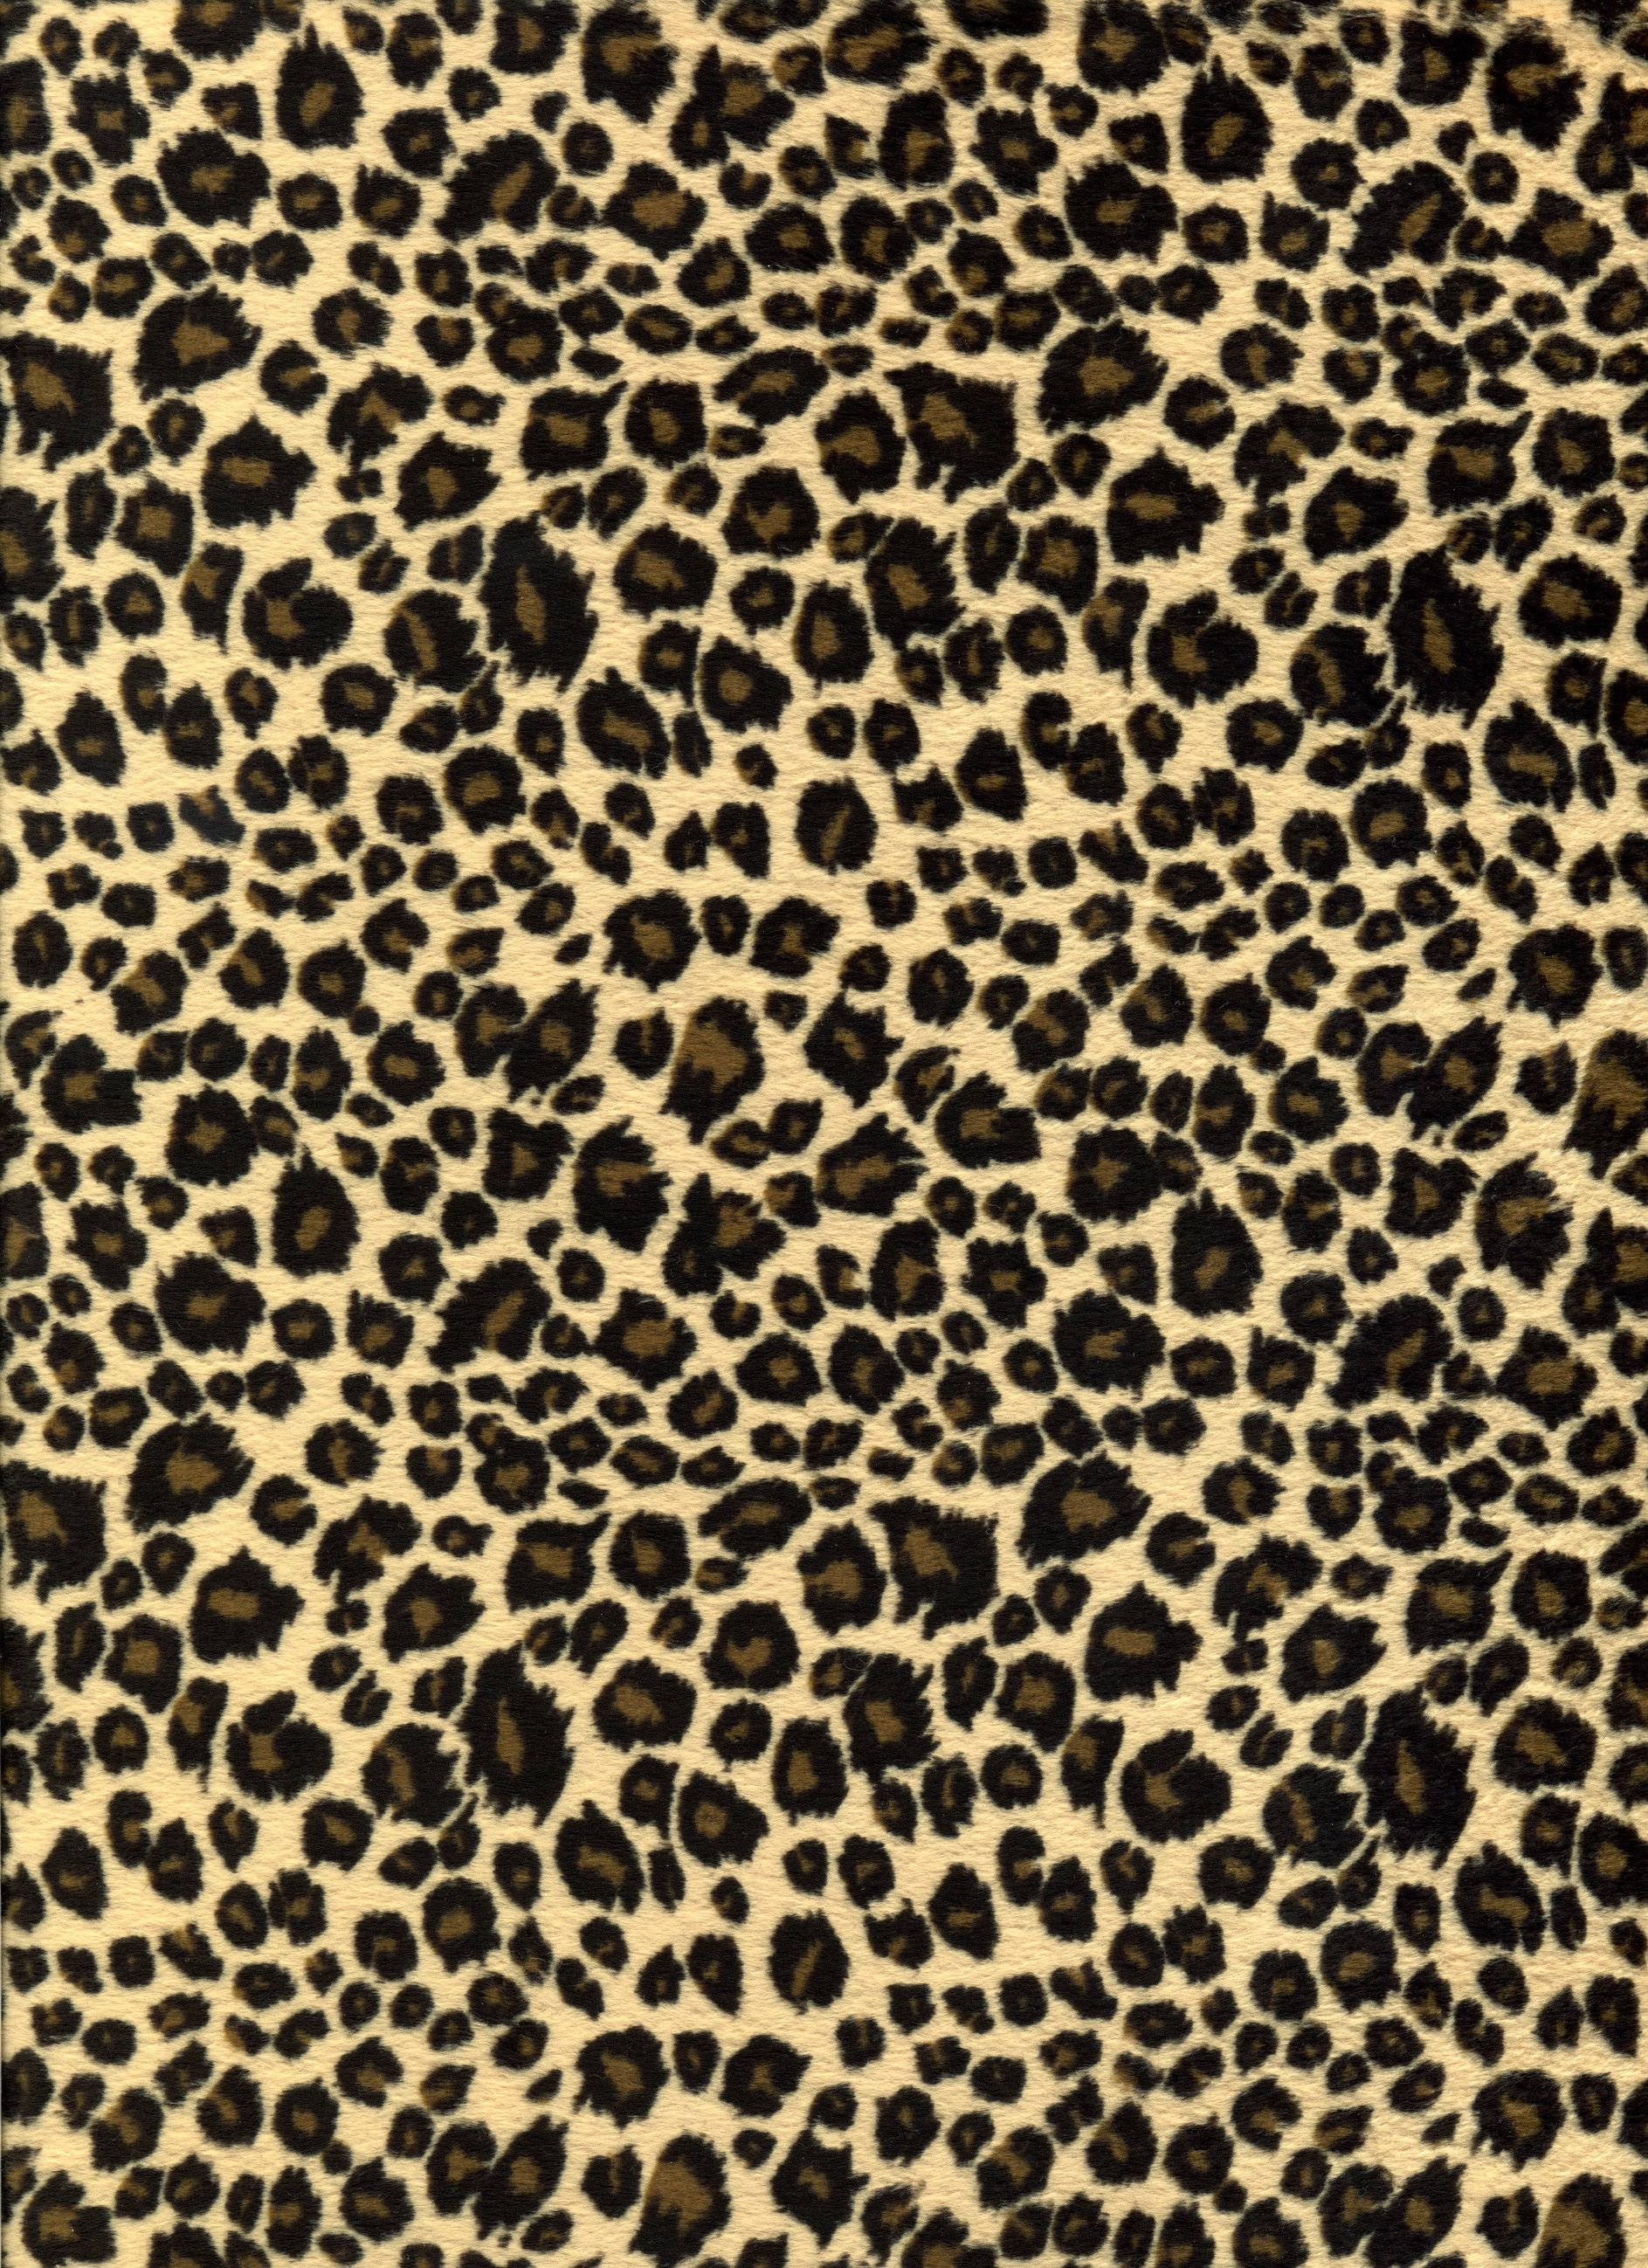 Any And All Animal Print Wallpaper Leopard Print Fabric Cheetah Print Background